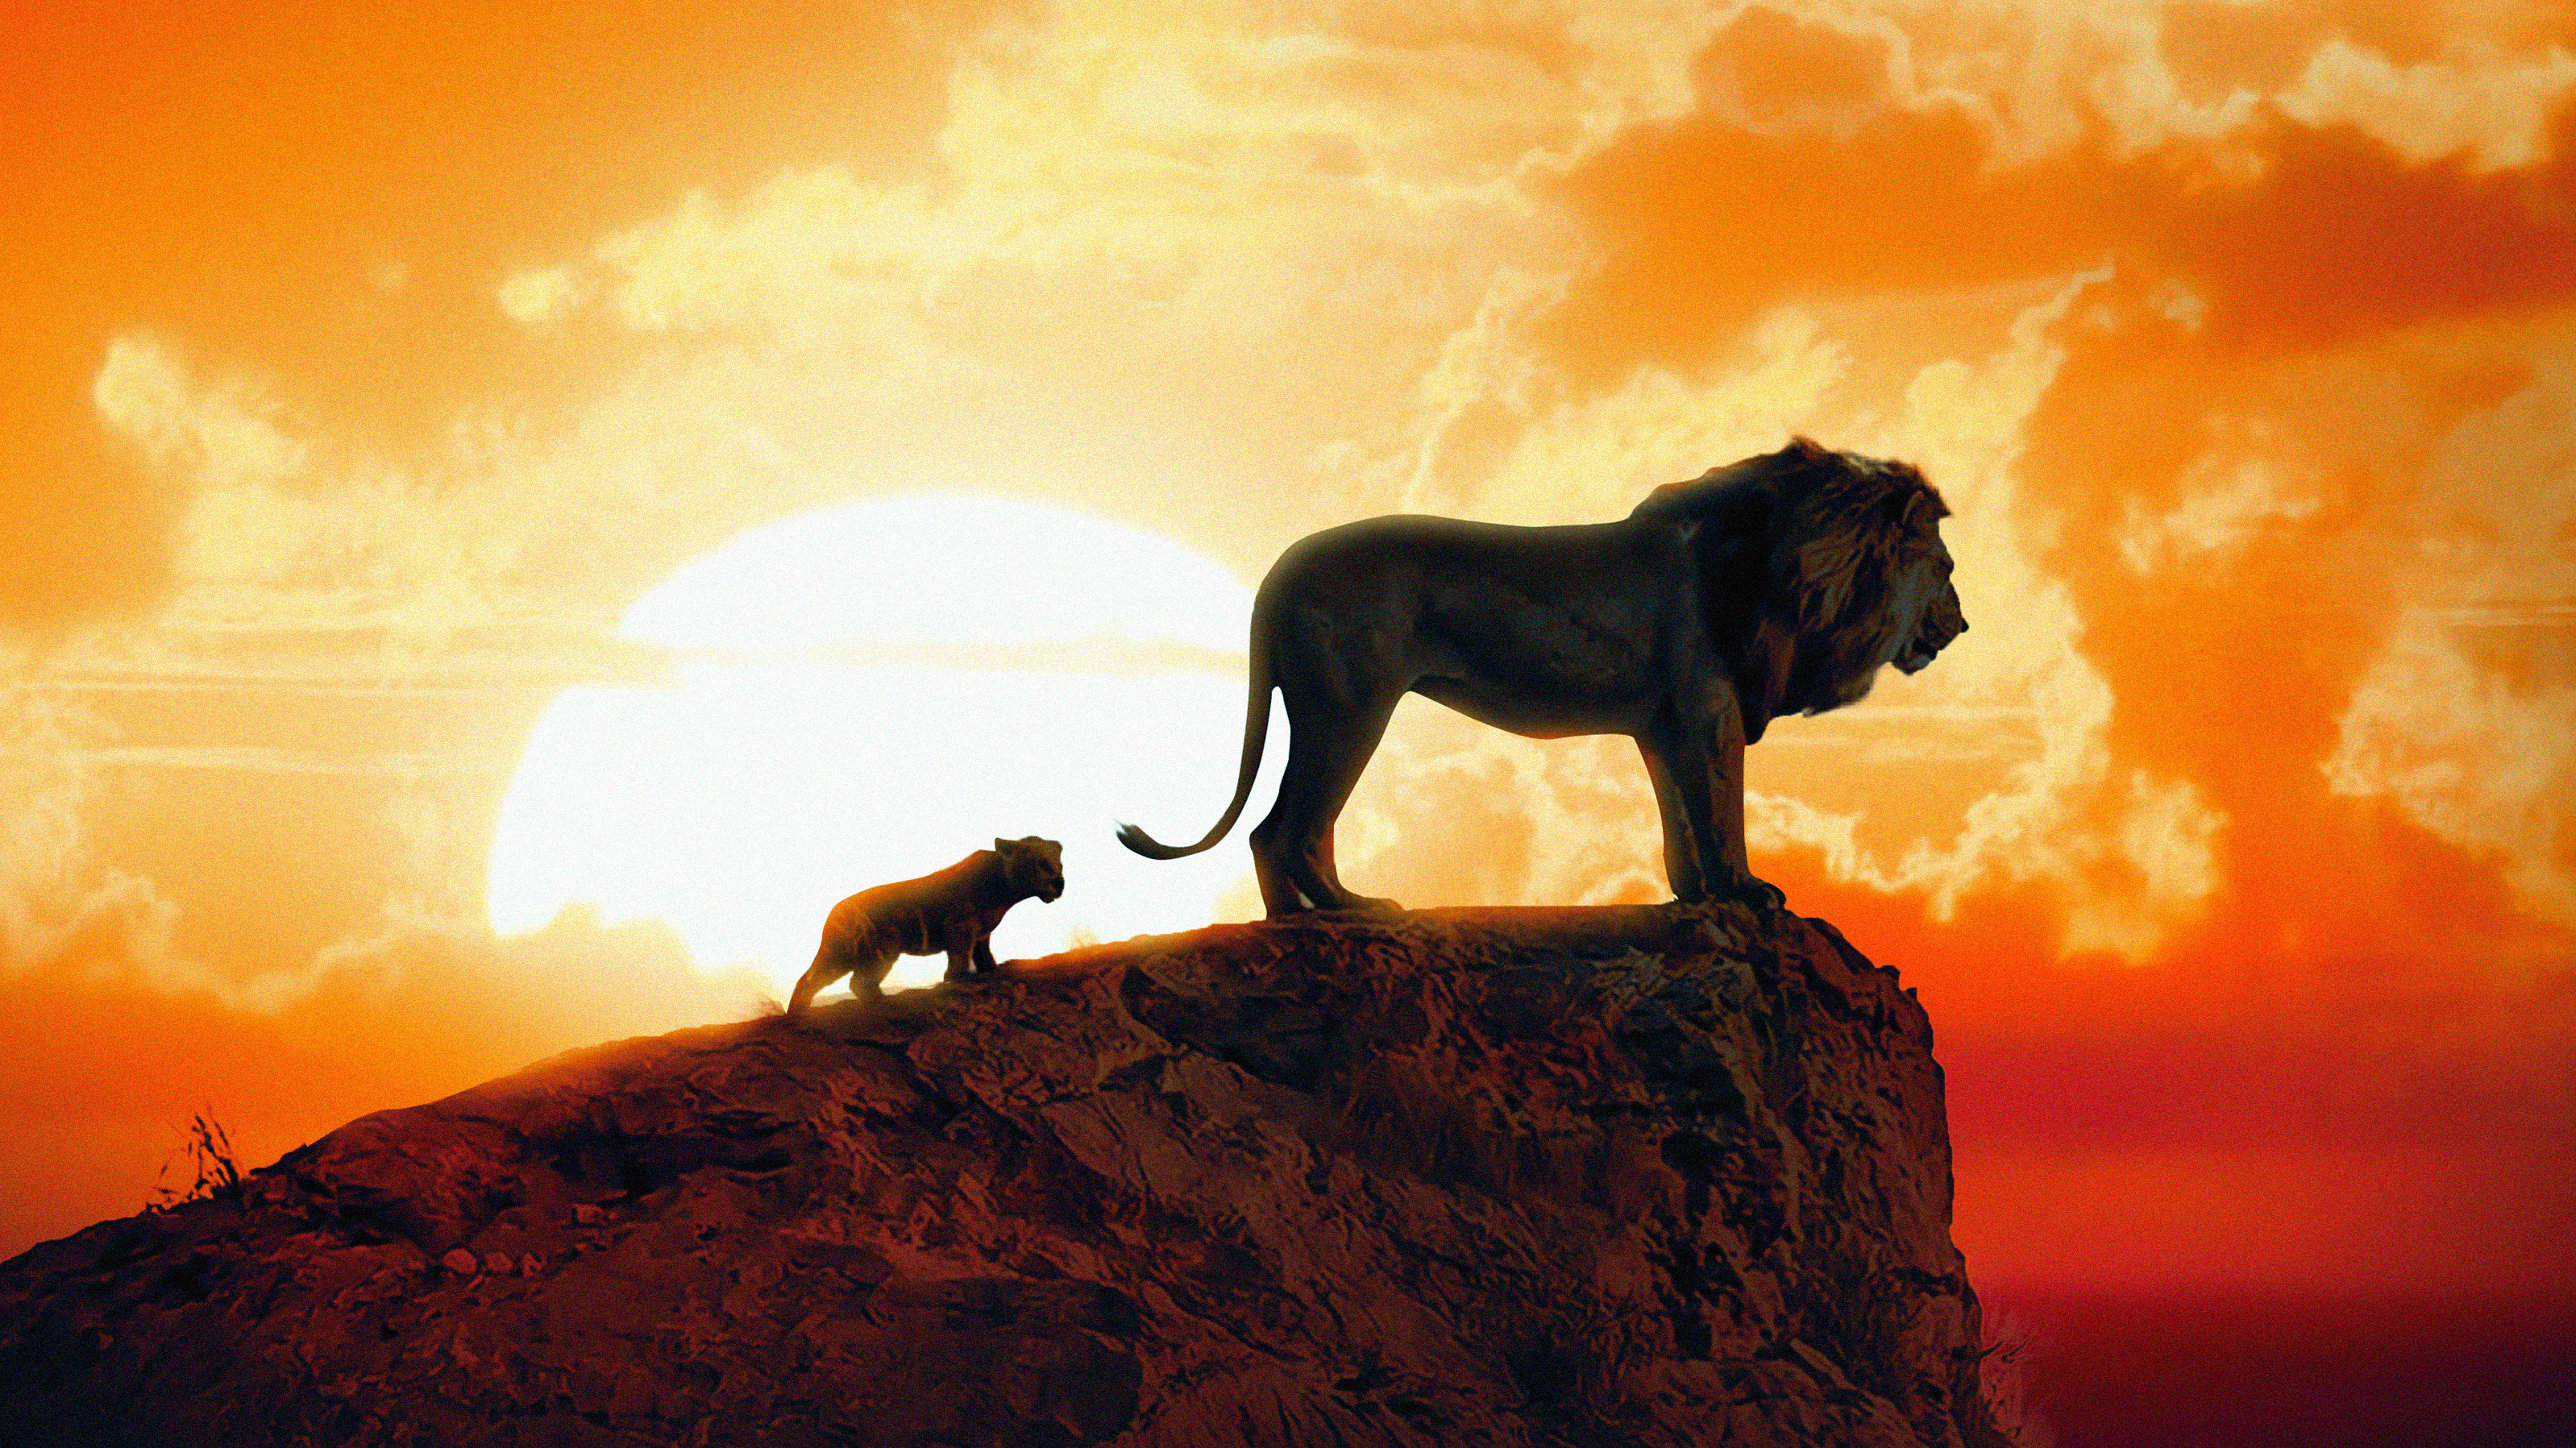 The Lion King New Poster Hd Movies 4k Wallpapers Images